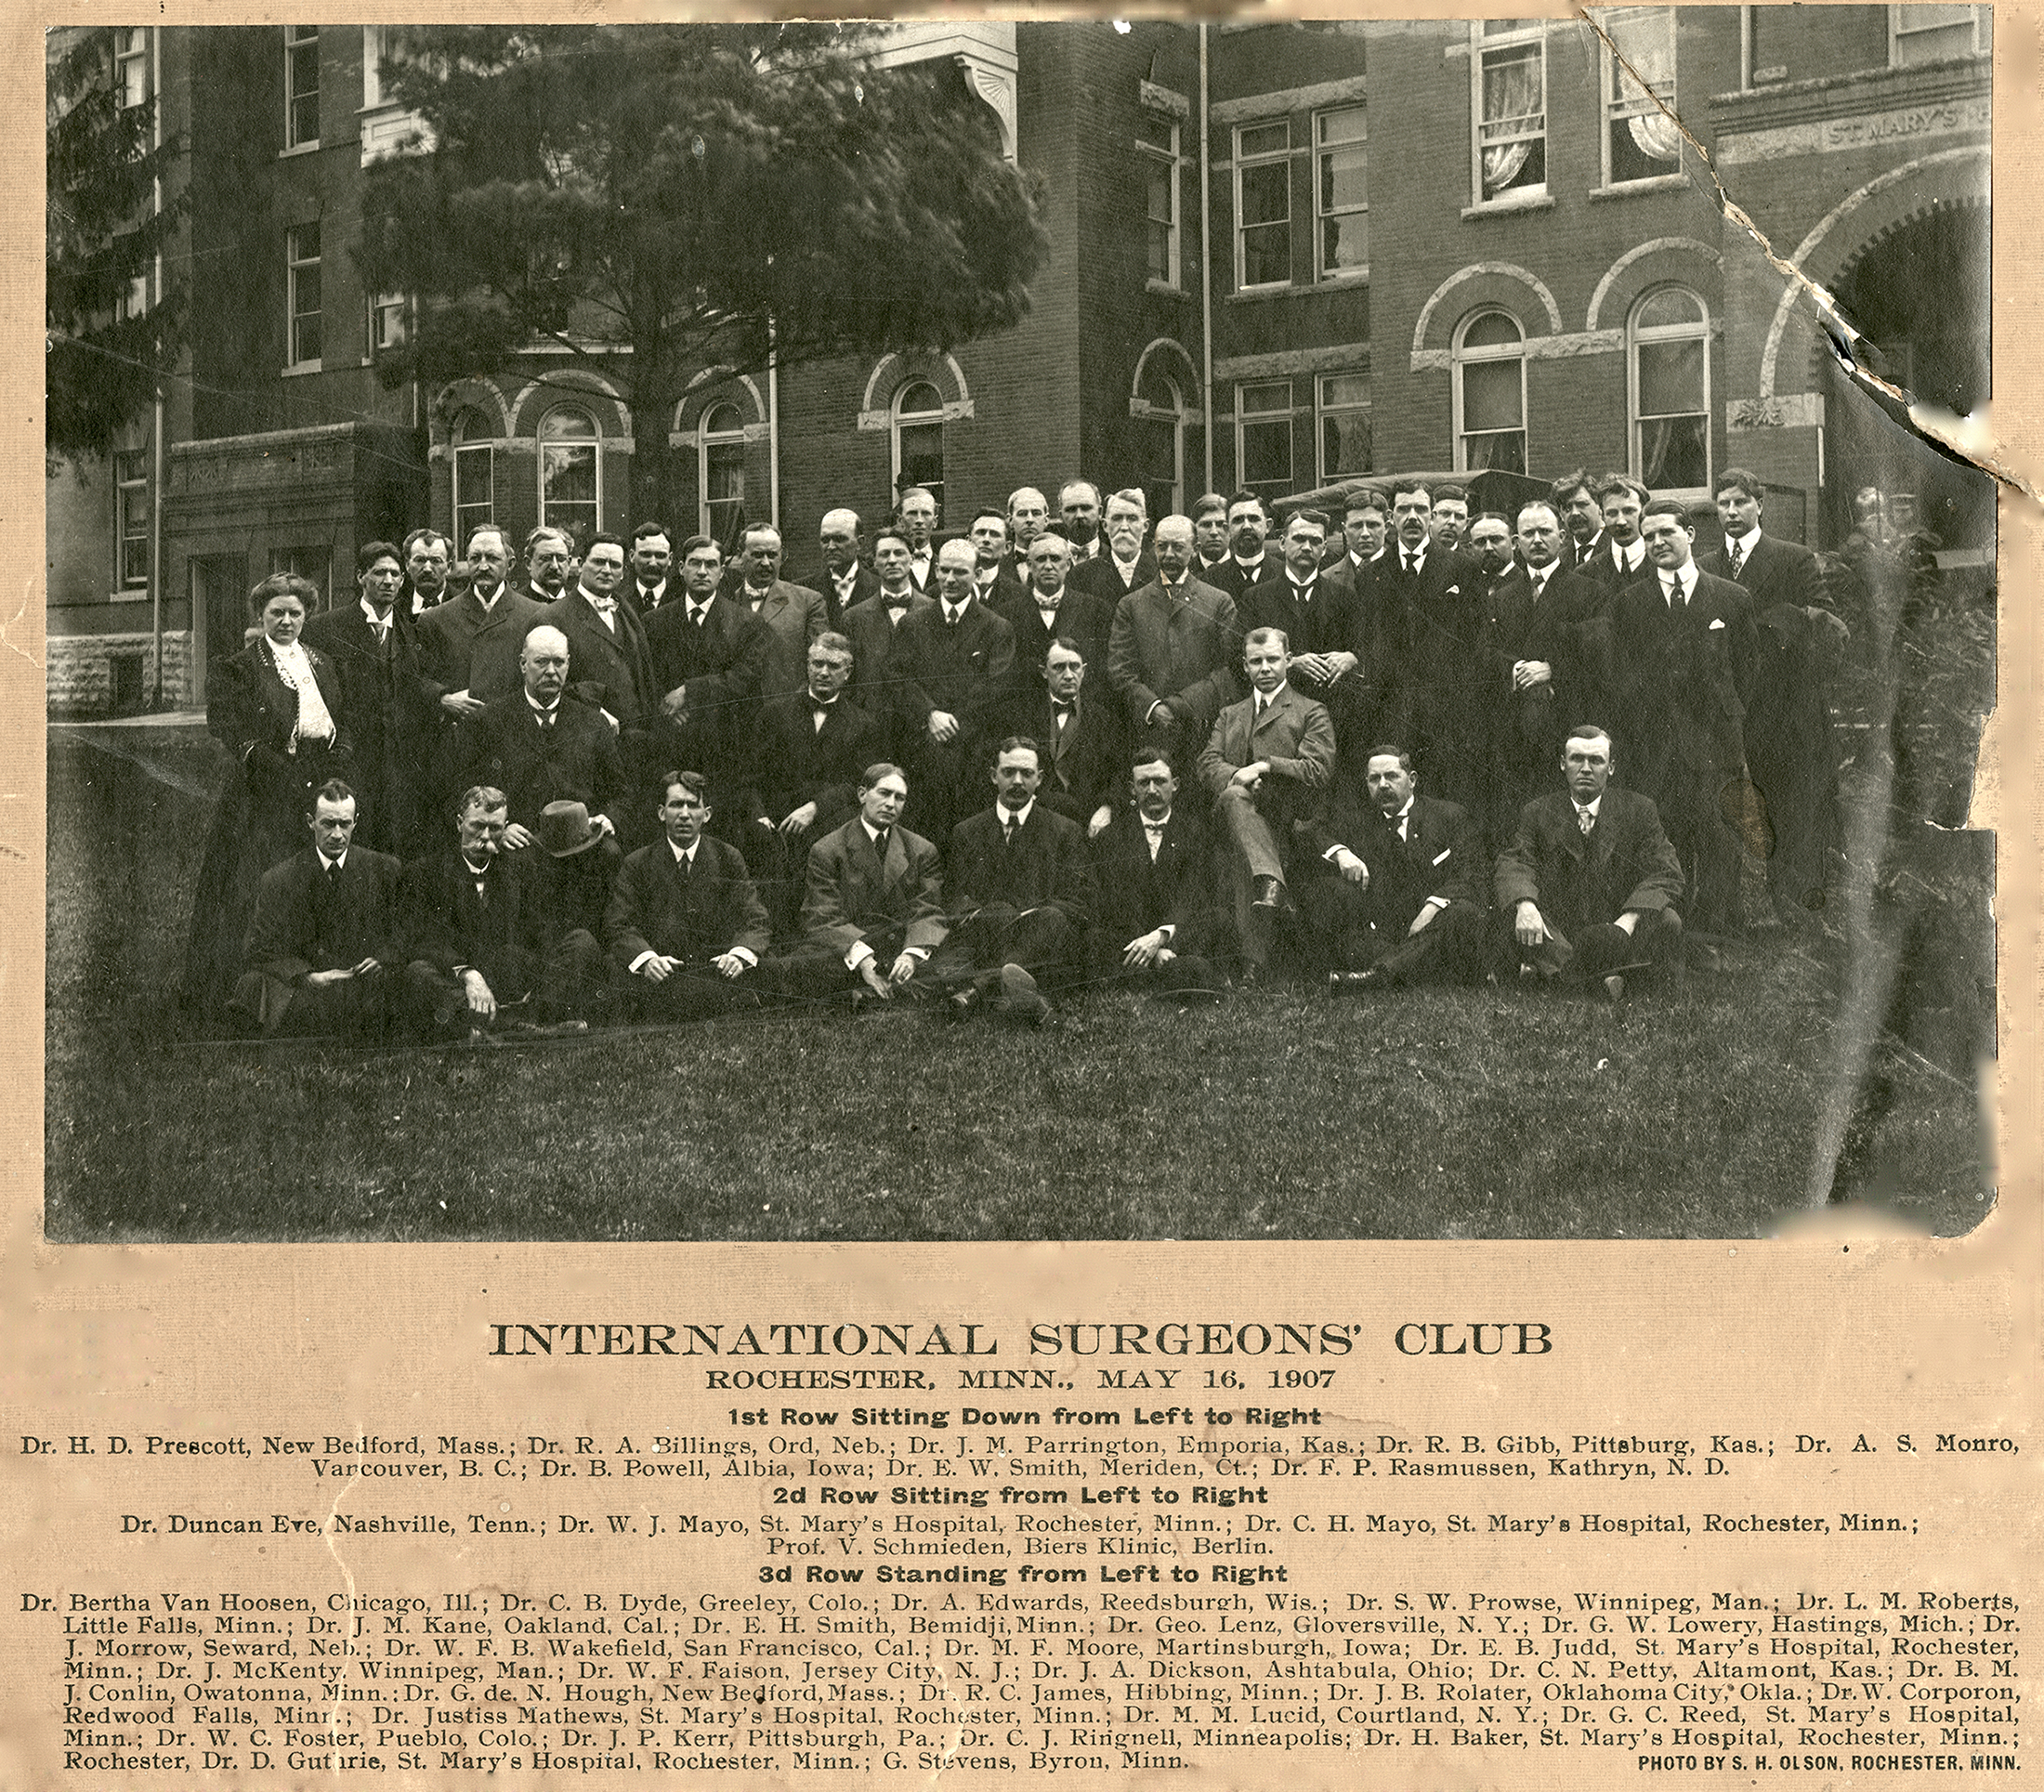 Photo of the 1907 Surgeons' Club